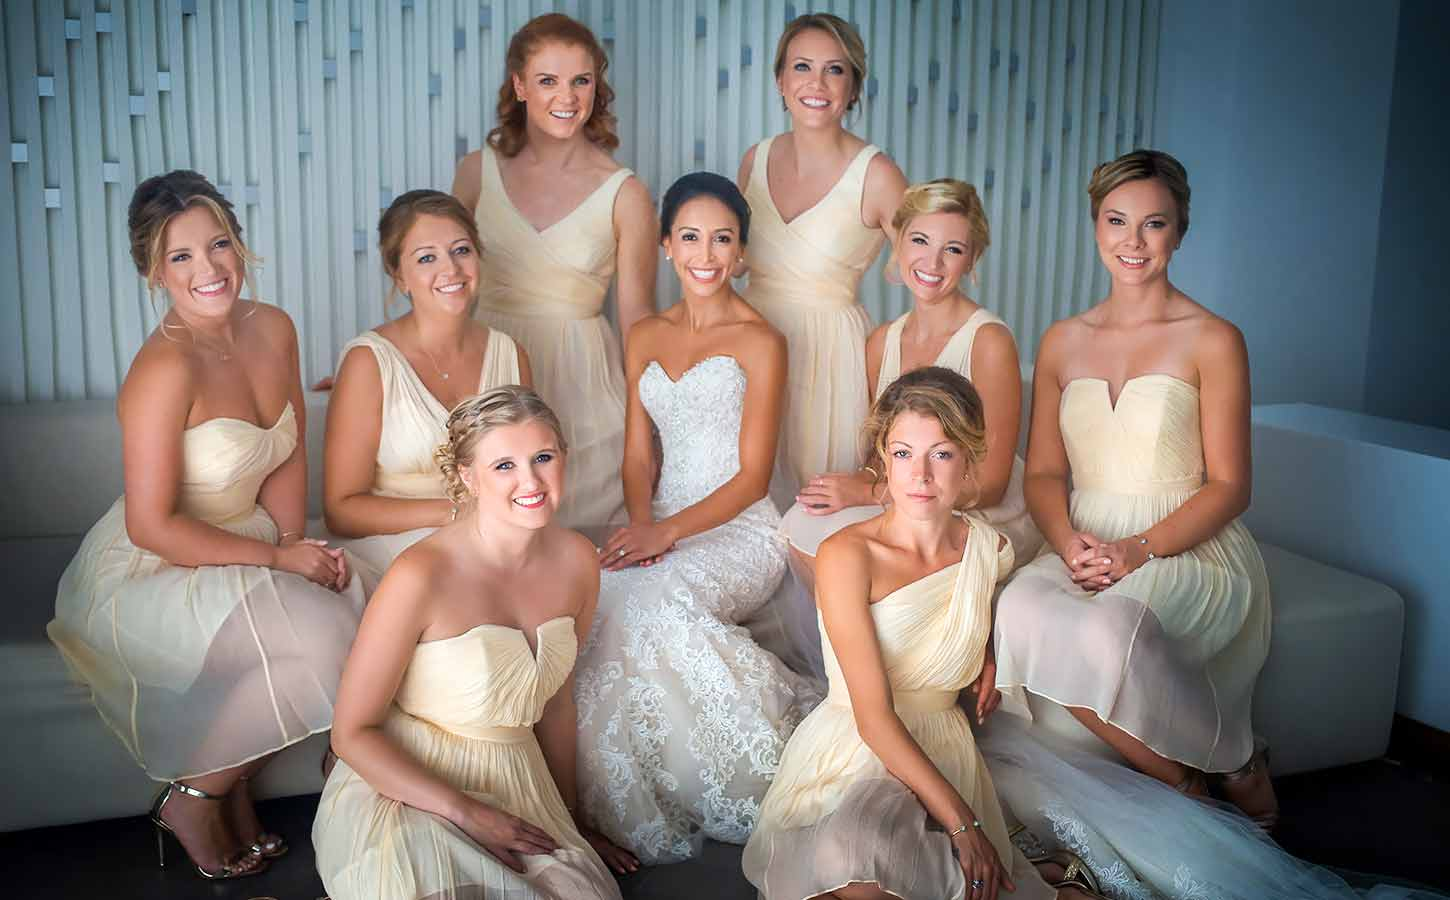 A beautiful bride with her friends | Tips For Brides for a Greece Wedding | Diamond Events Wedding Planner